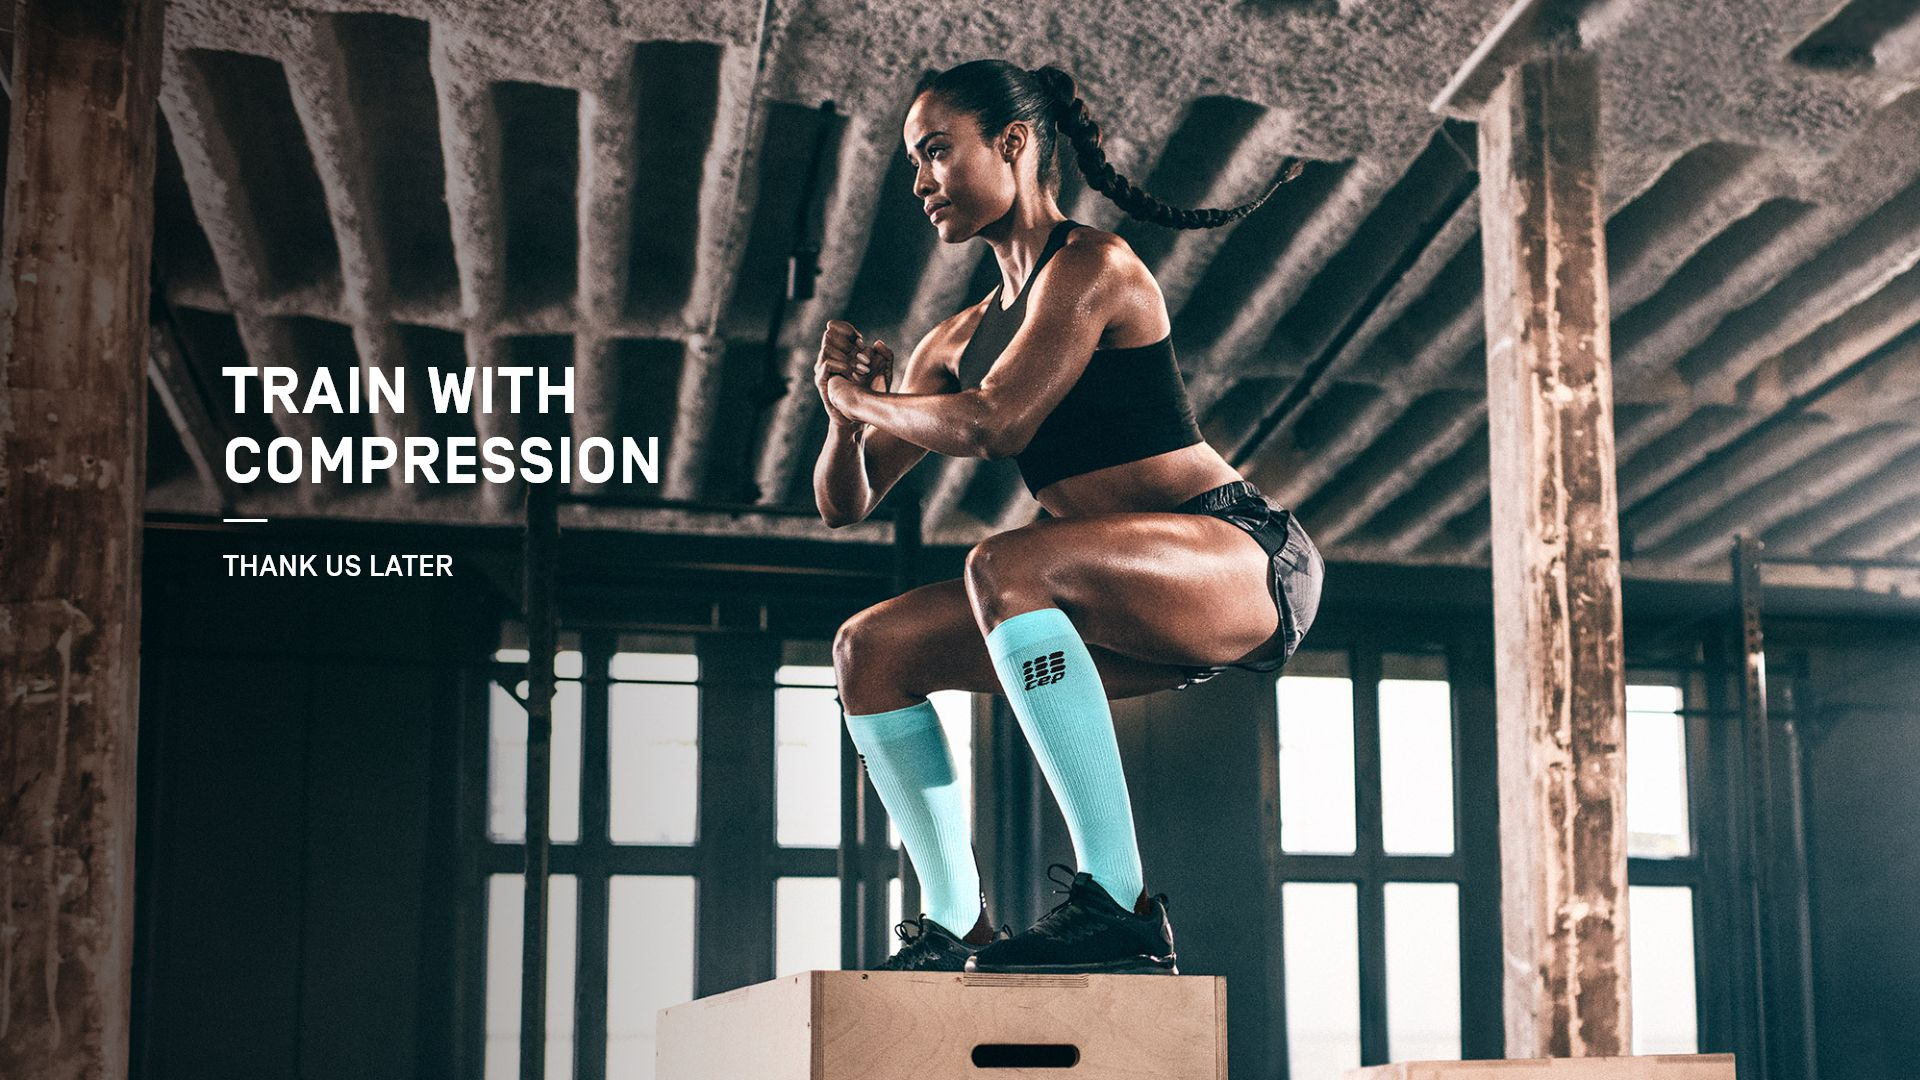 train with compression